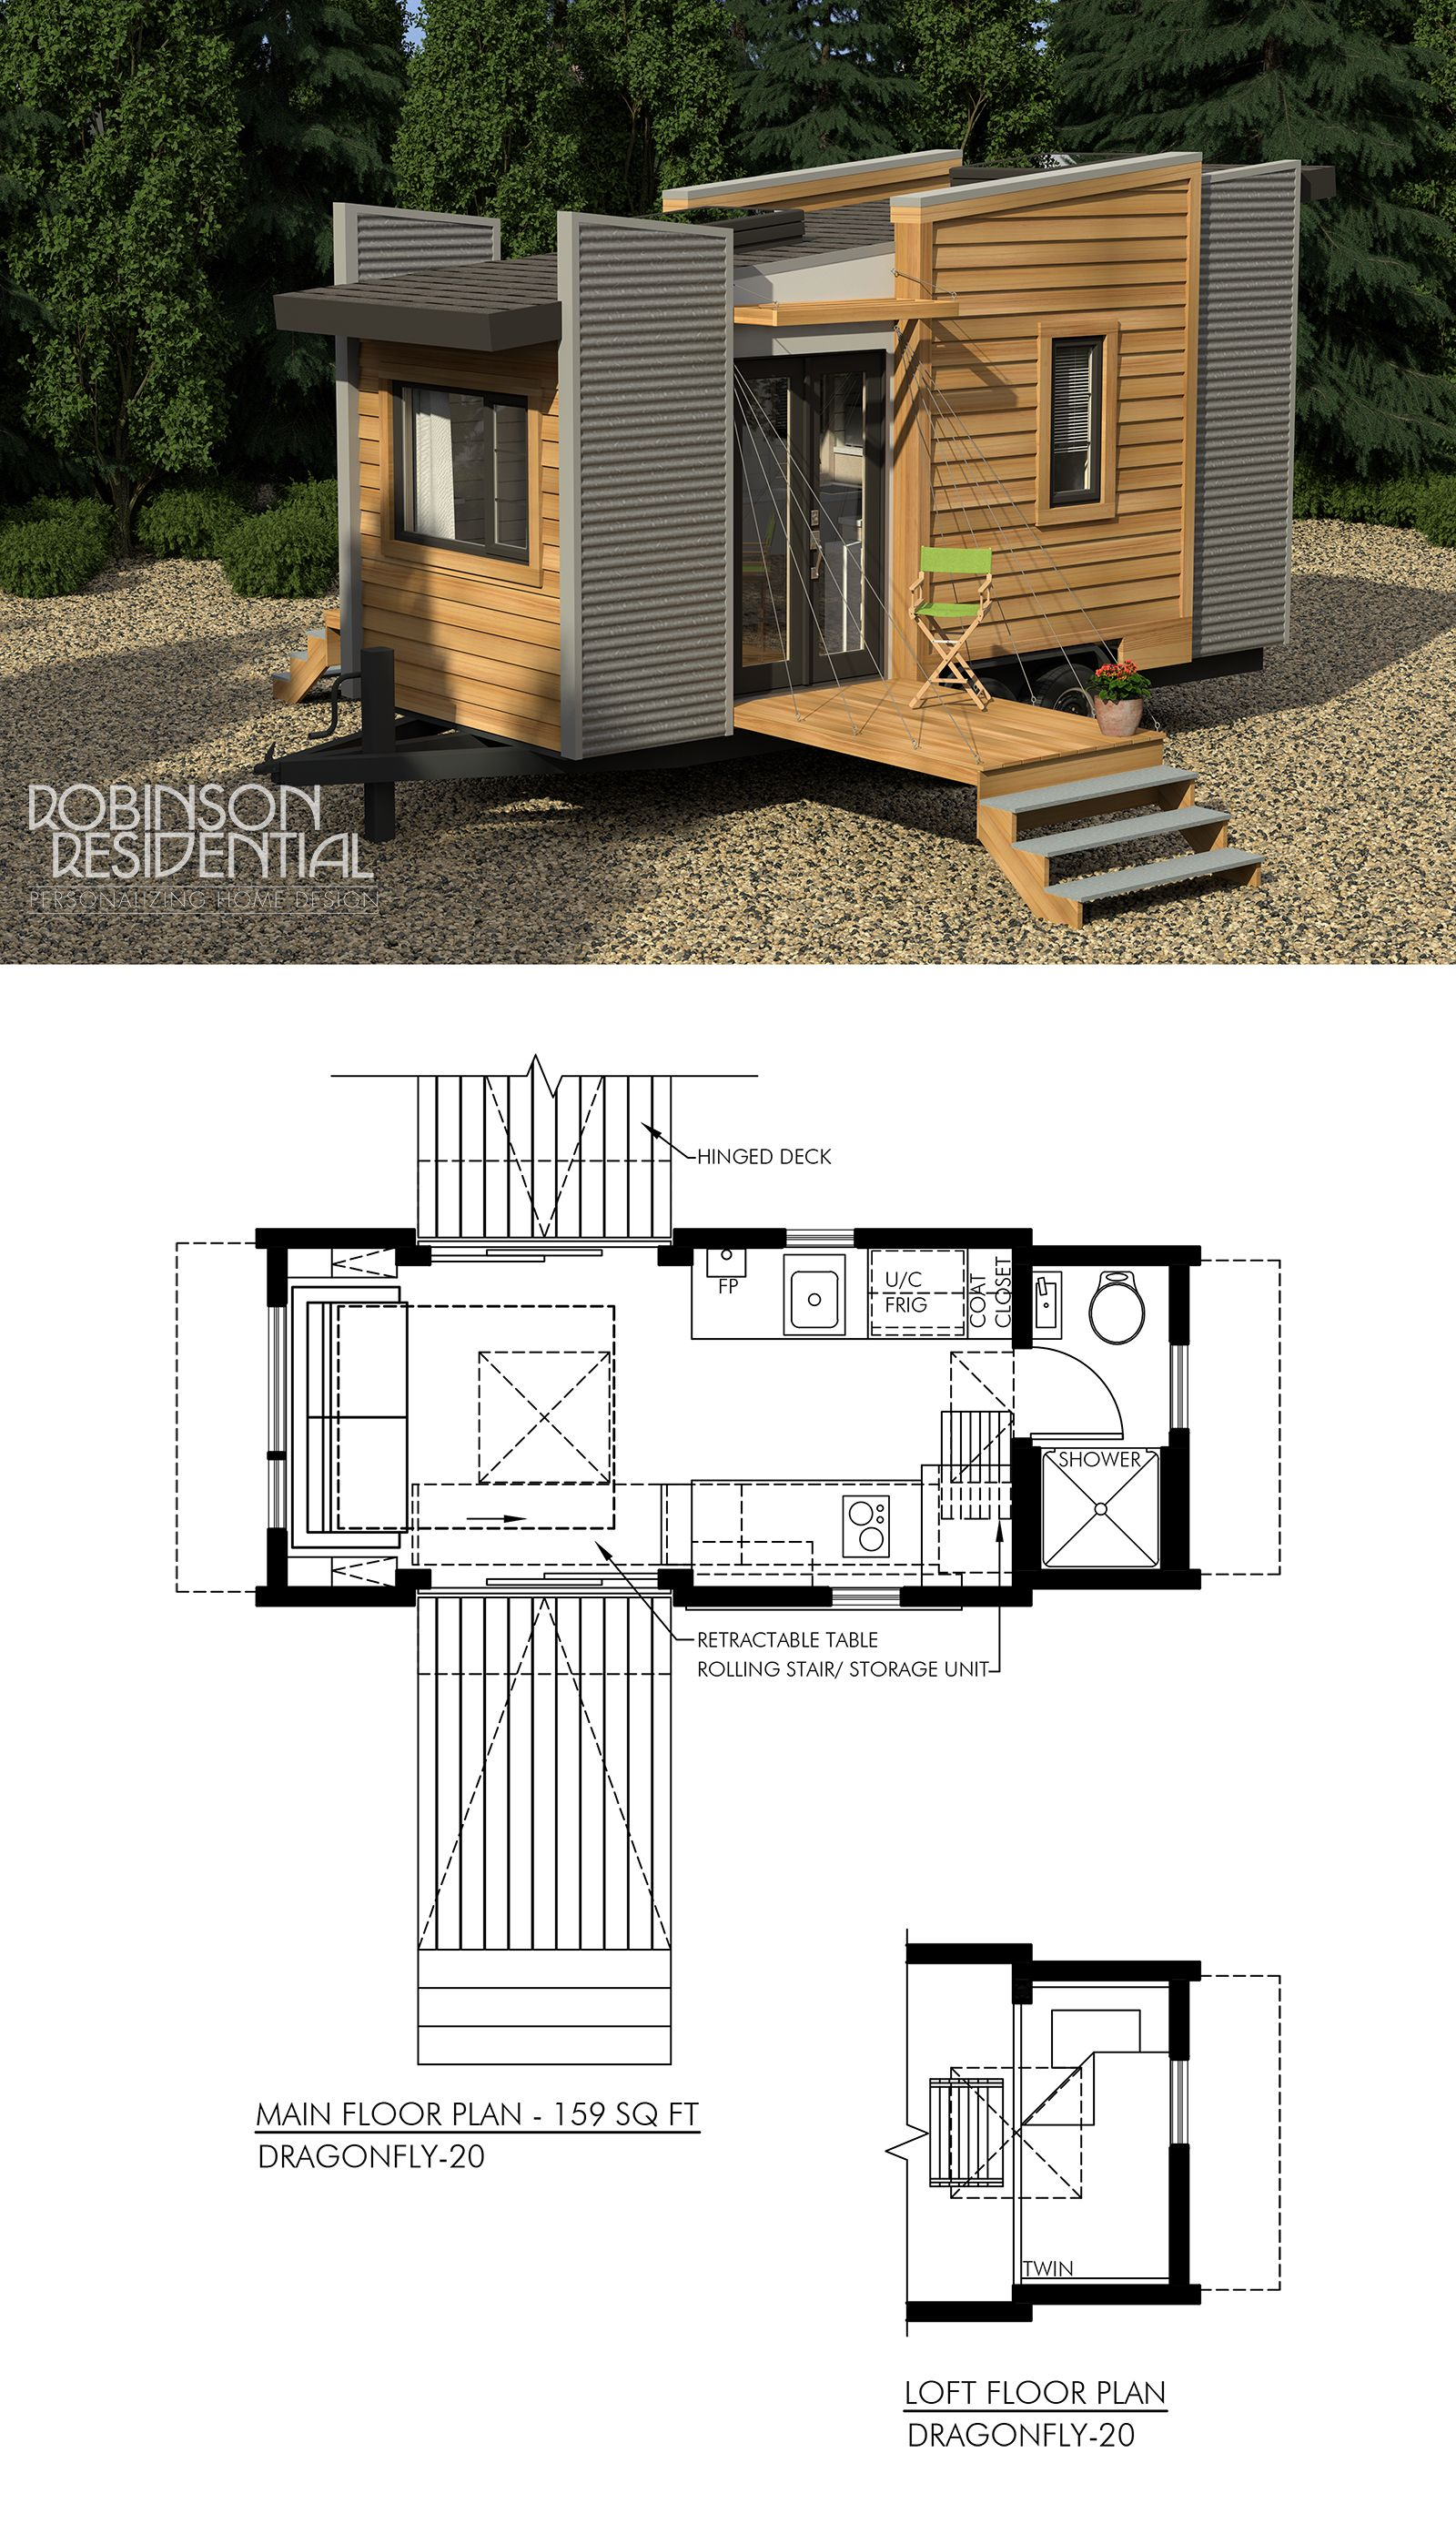 Contemporary Dragonfly-20 | Tiny houses, Dragonflies and Wood frame ...